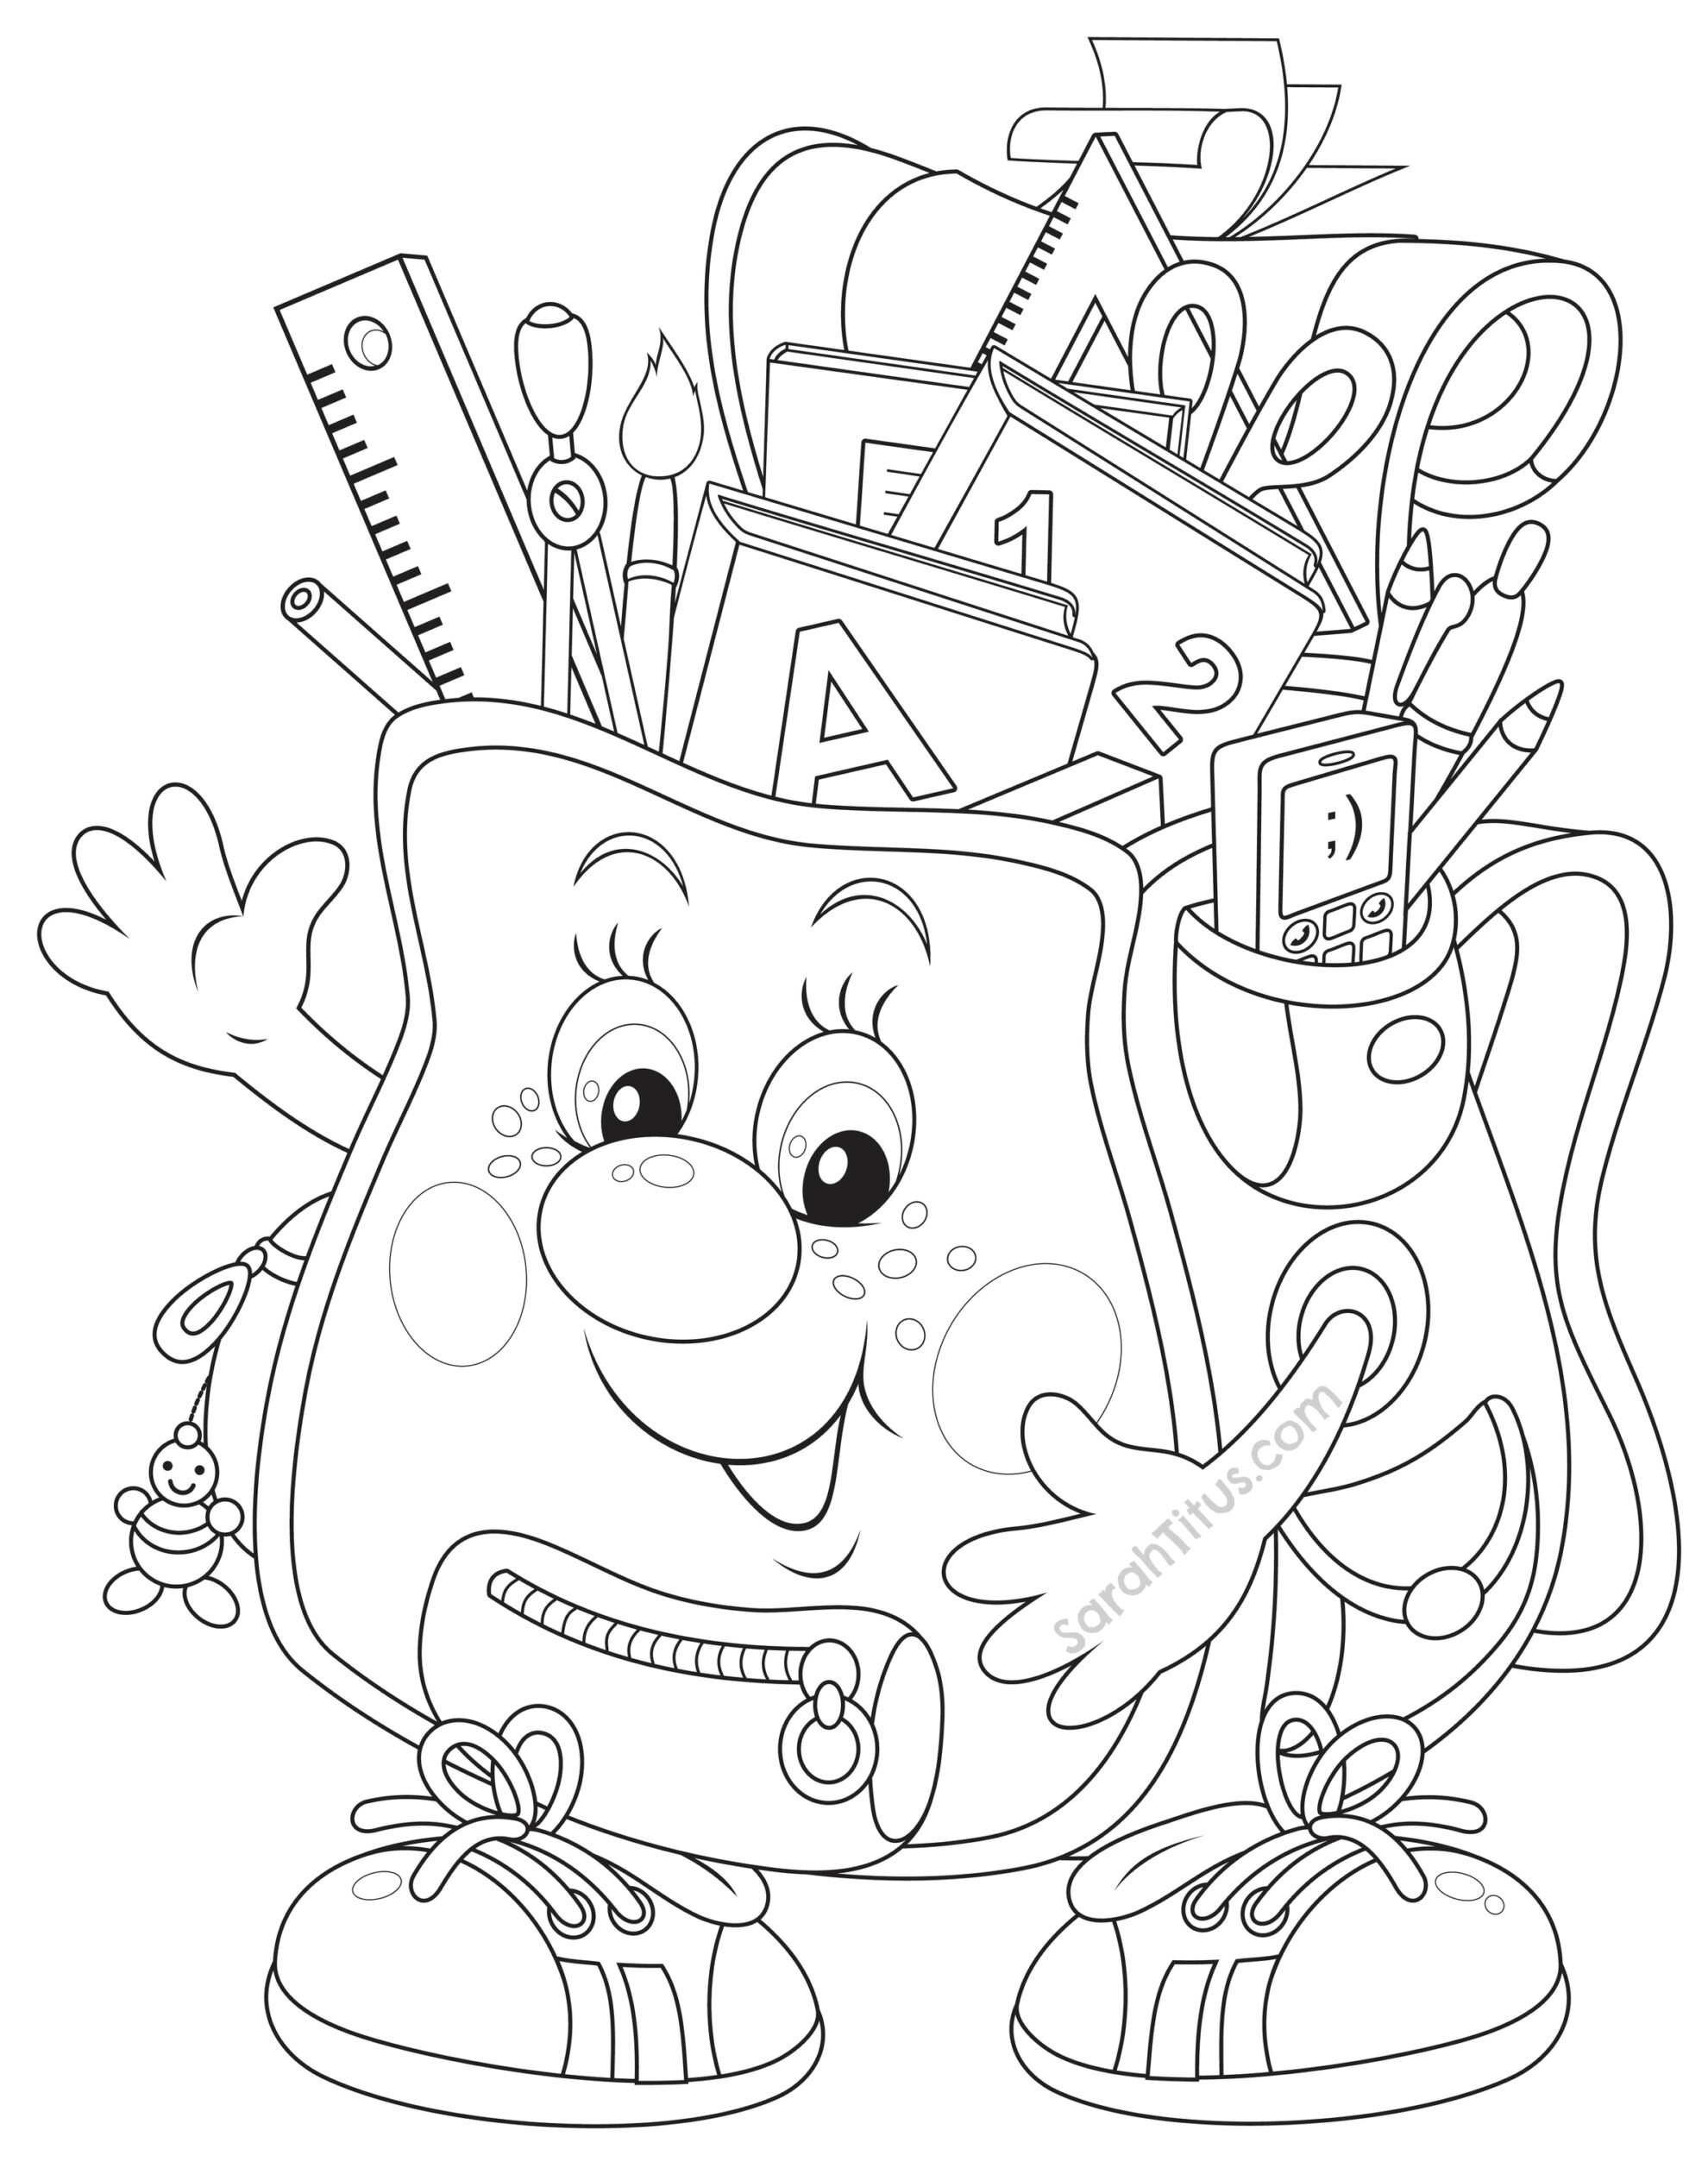 End Of The Year Coloring Pages For Kindergarten : Back to school coloring pages sarah titus